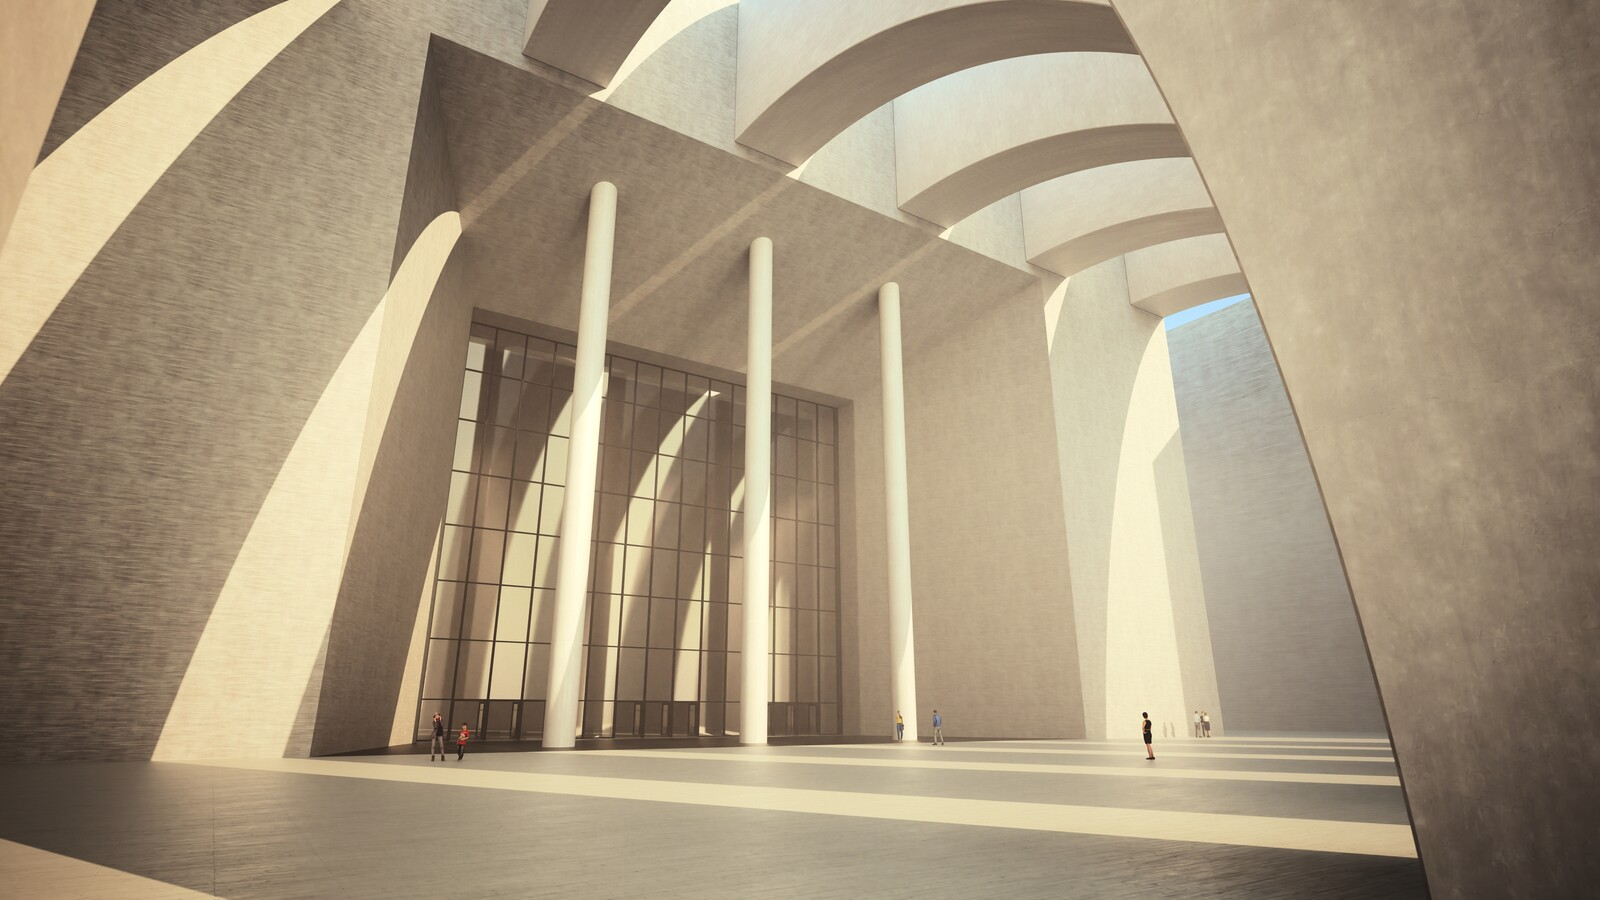 SketchUp 2019 + Thea Render  Large Hall Main Entry_SU8 2018-Scene 7 3840x2160 40m30s 1024 sp 02 DOF3